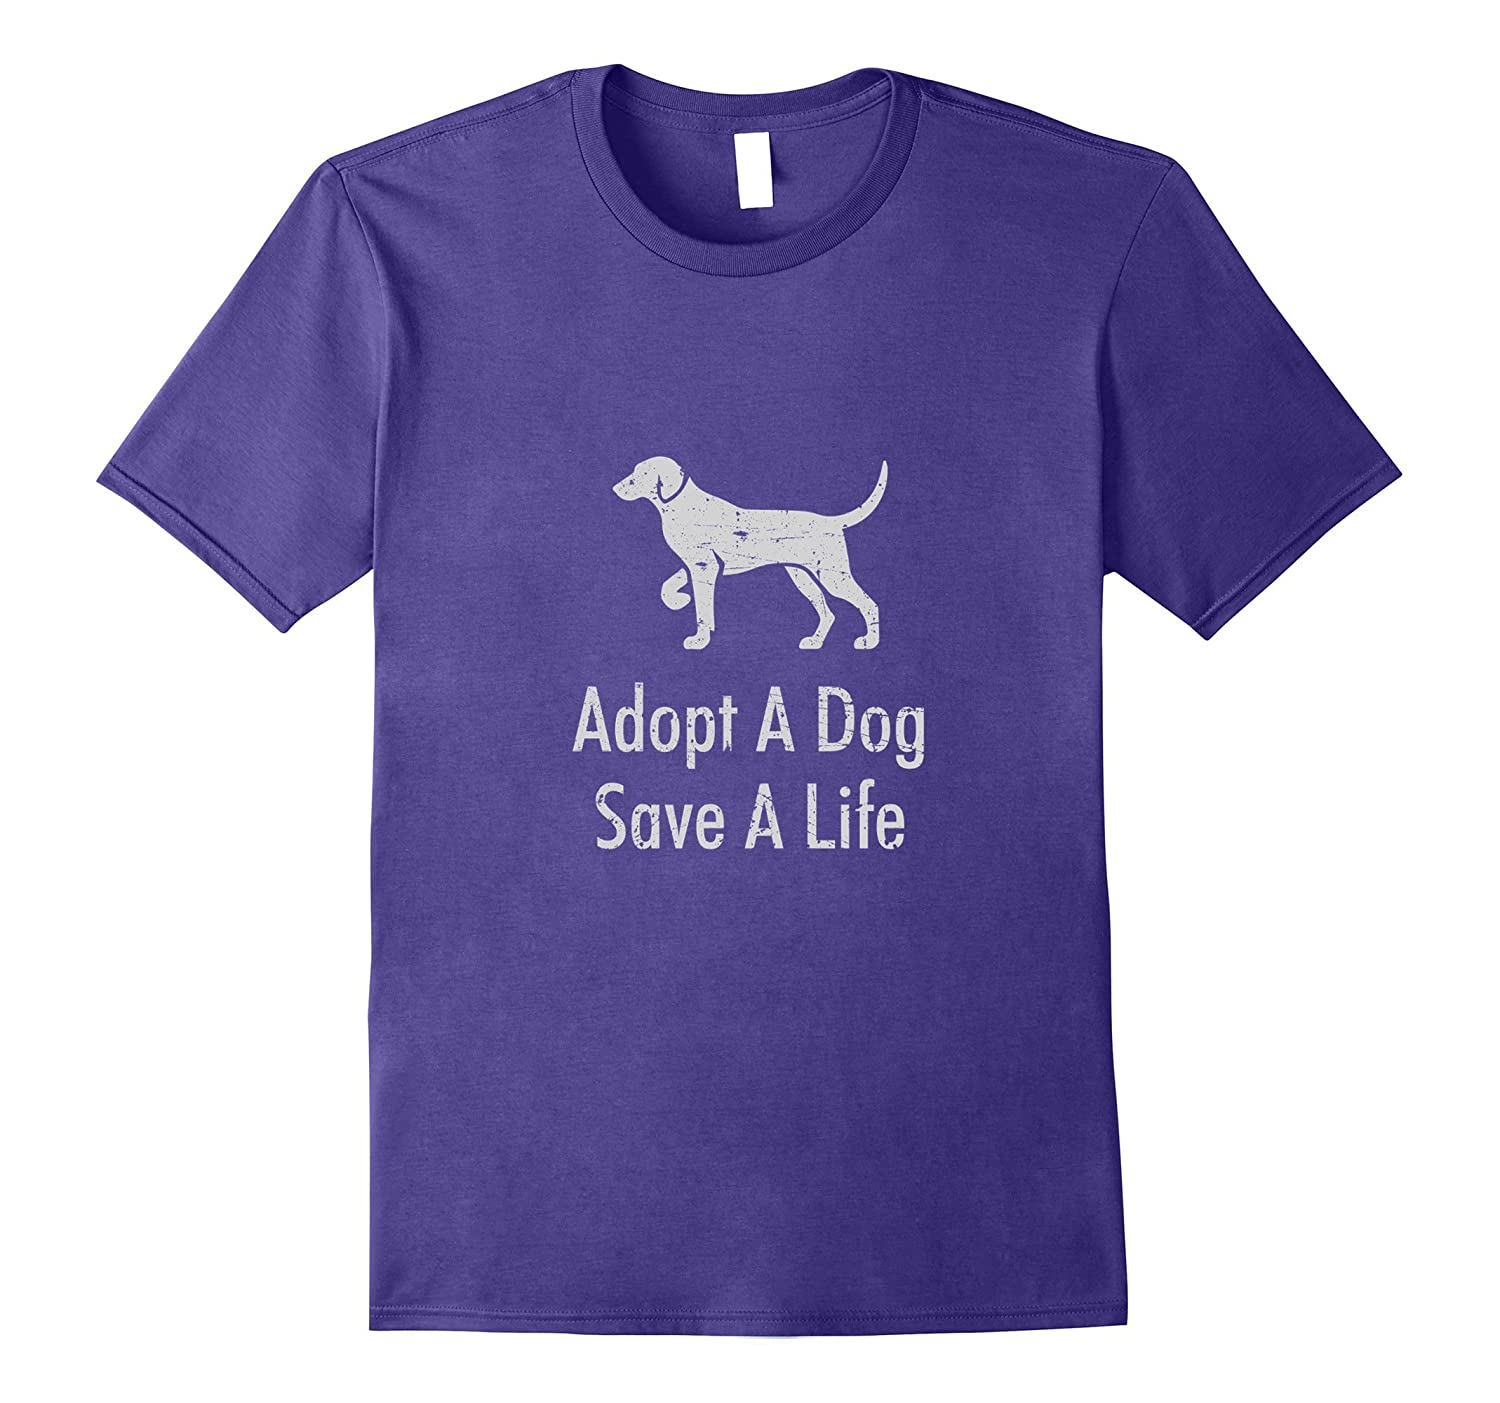 Adopt a Dog Save a Life - Cute Rescue Distressed T-shirt-BN